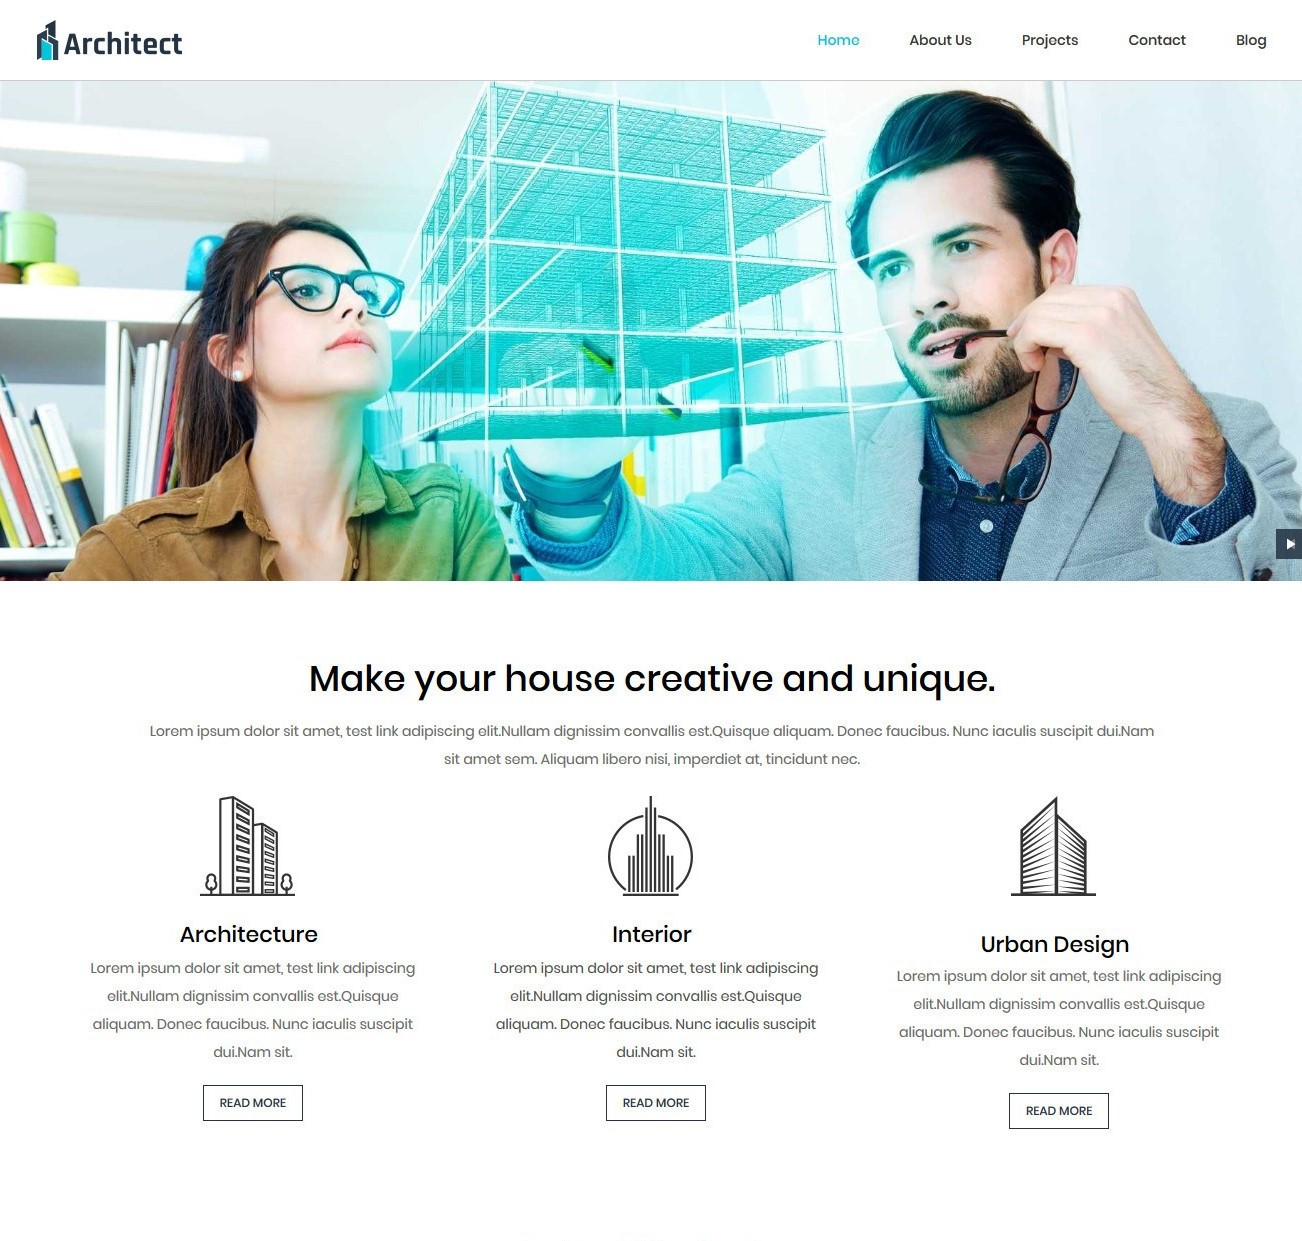 I will professional responsive website design and development full complete